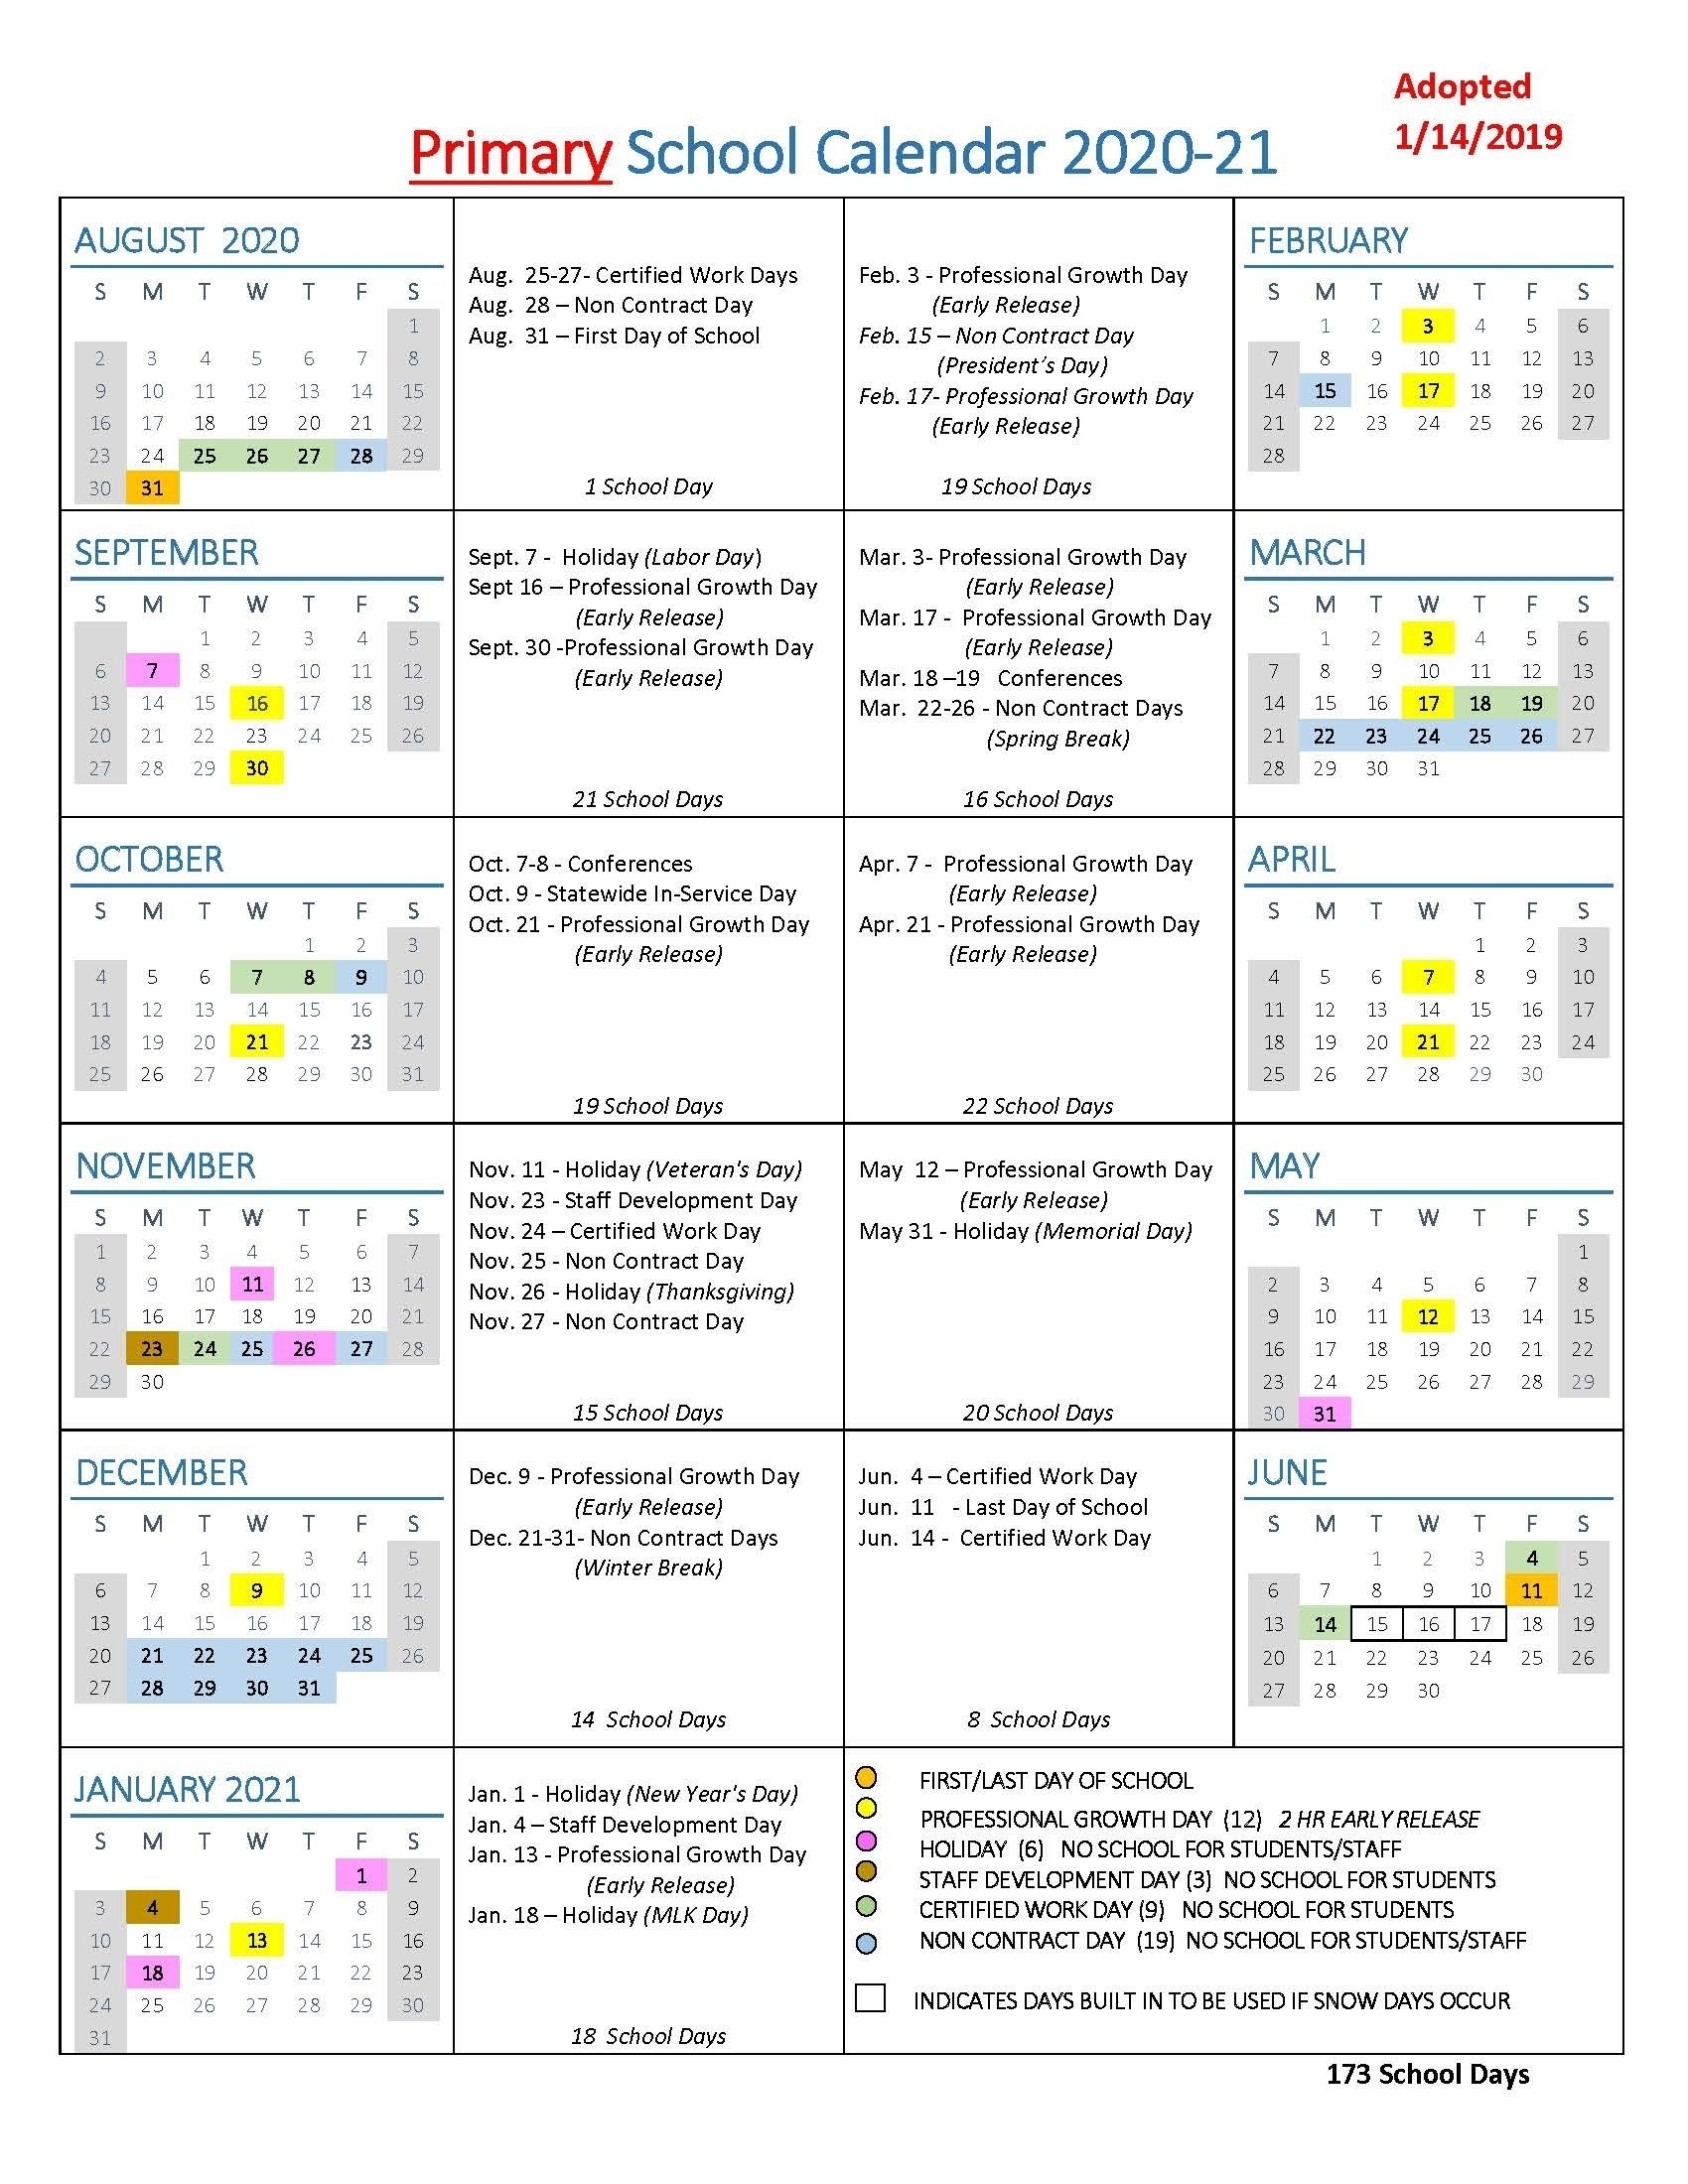 Calendar With All The Special Days In 2020 - Calendar with Special Days In 2020 Calendar